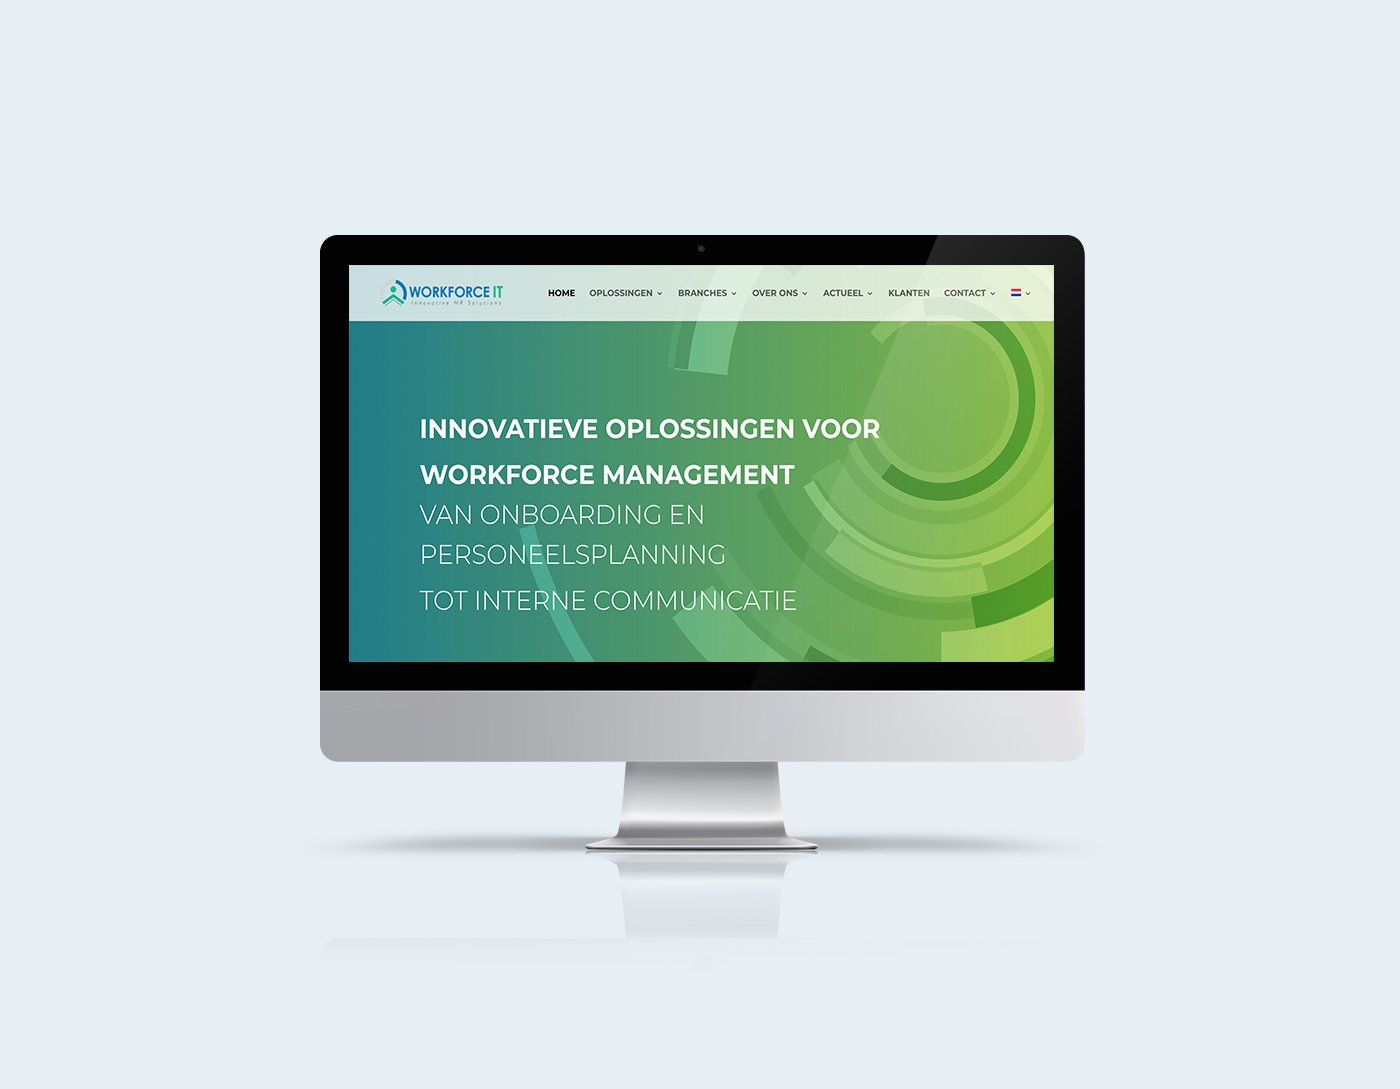 strategisch online marketing advies Kleidi websites webshops workforce it